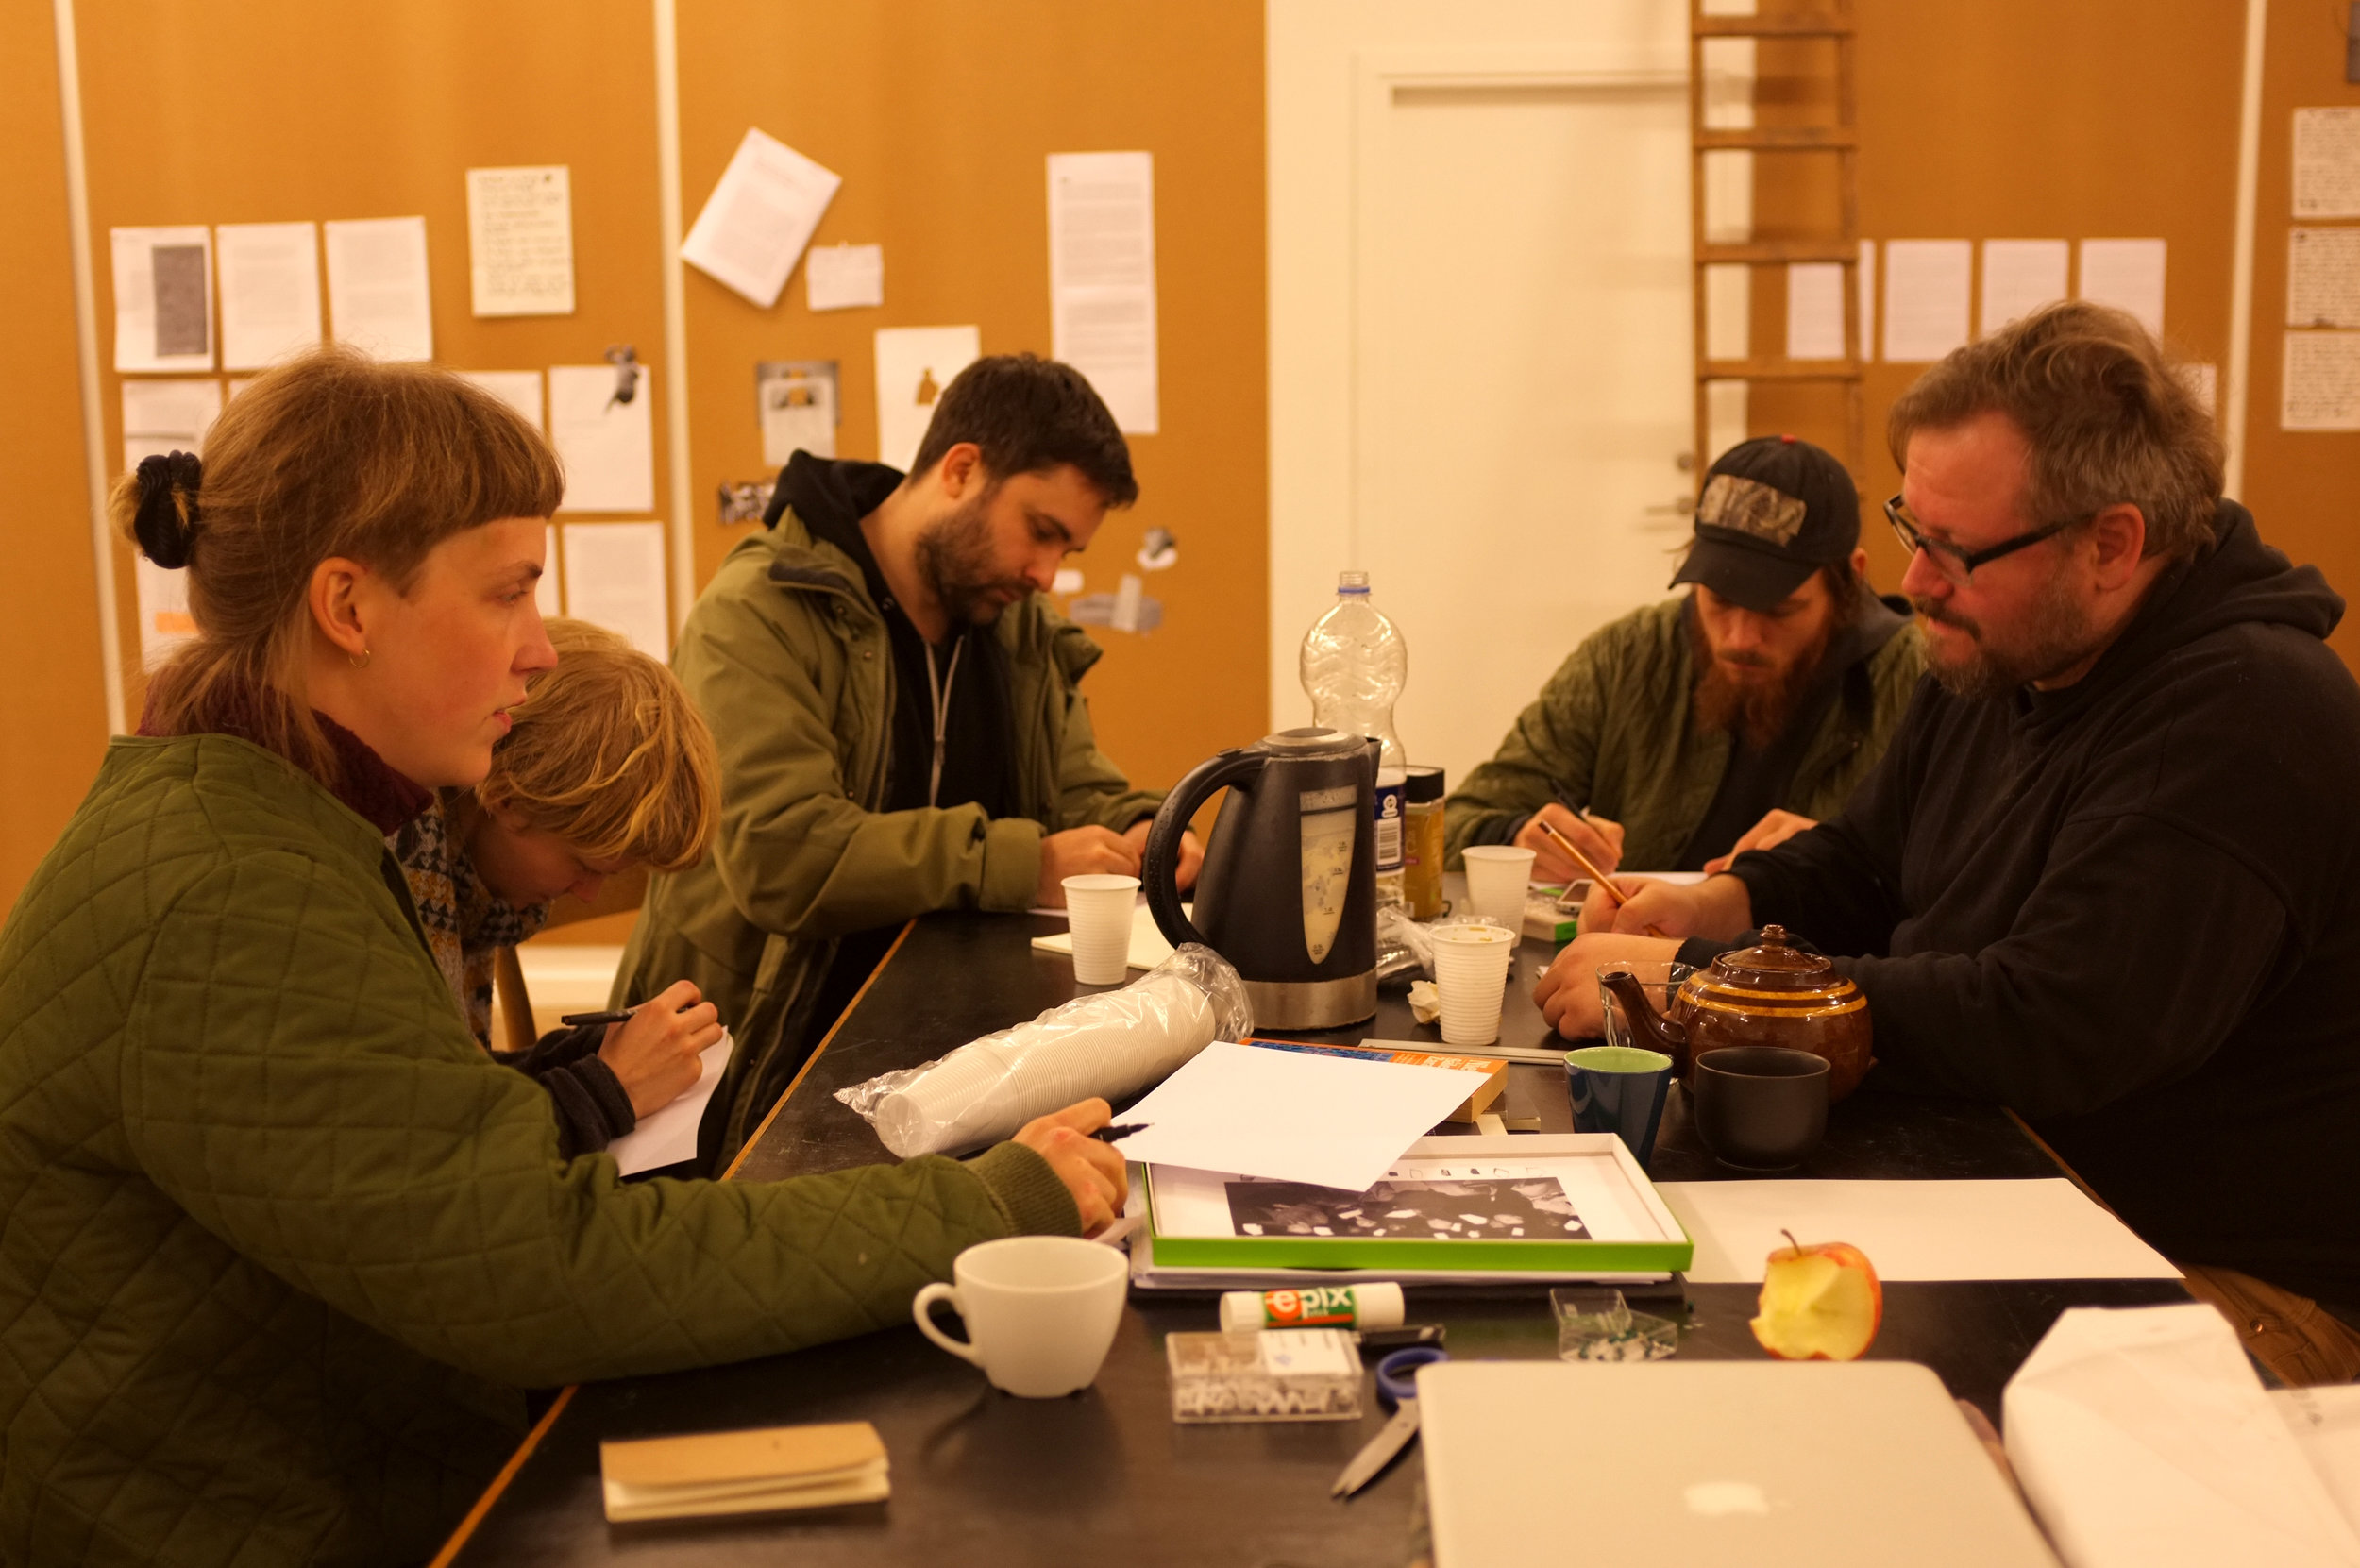 Frisk Flugt - Growing Silent. Open Editorial Process at New Shelter Plan, 2015